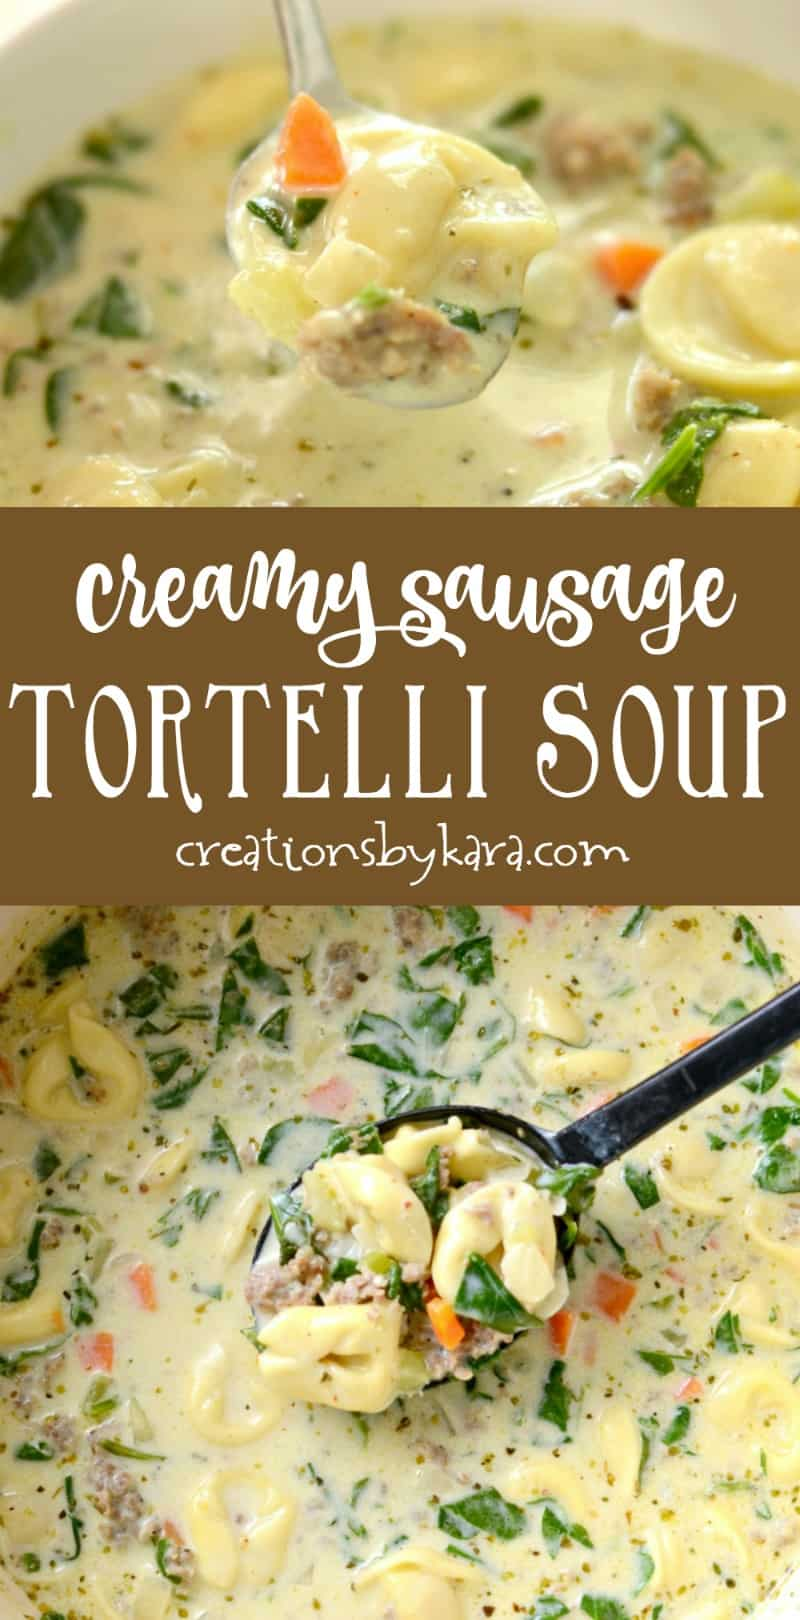 Make this Creamy Sausage Tortellini Soup to warm you up on winter evenings! A hearty and satisfying soup recipe. #soup #tortellini #sausage